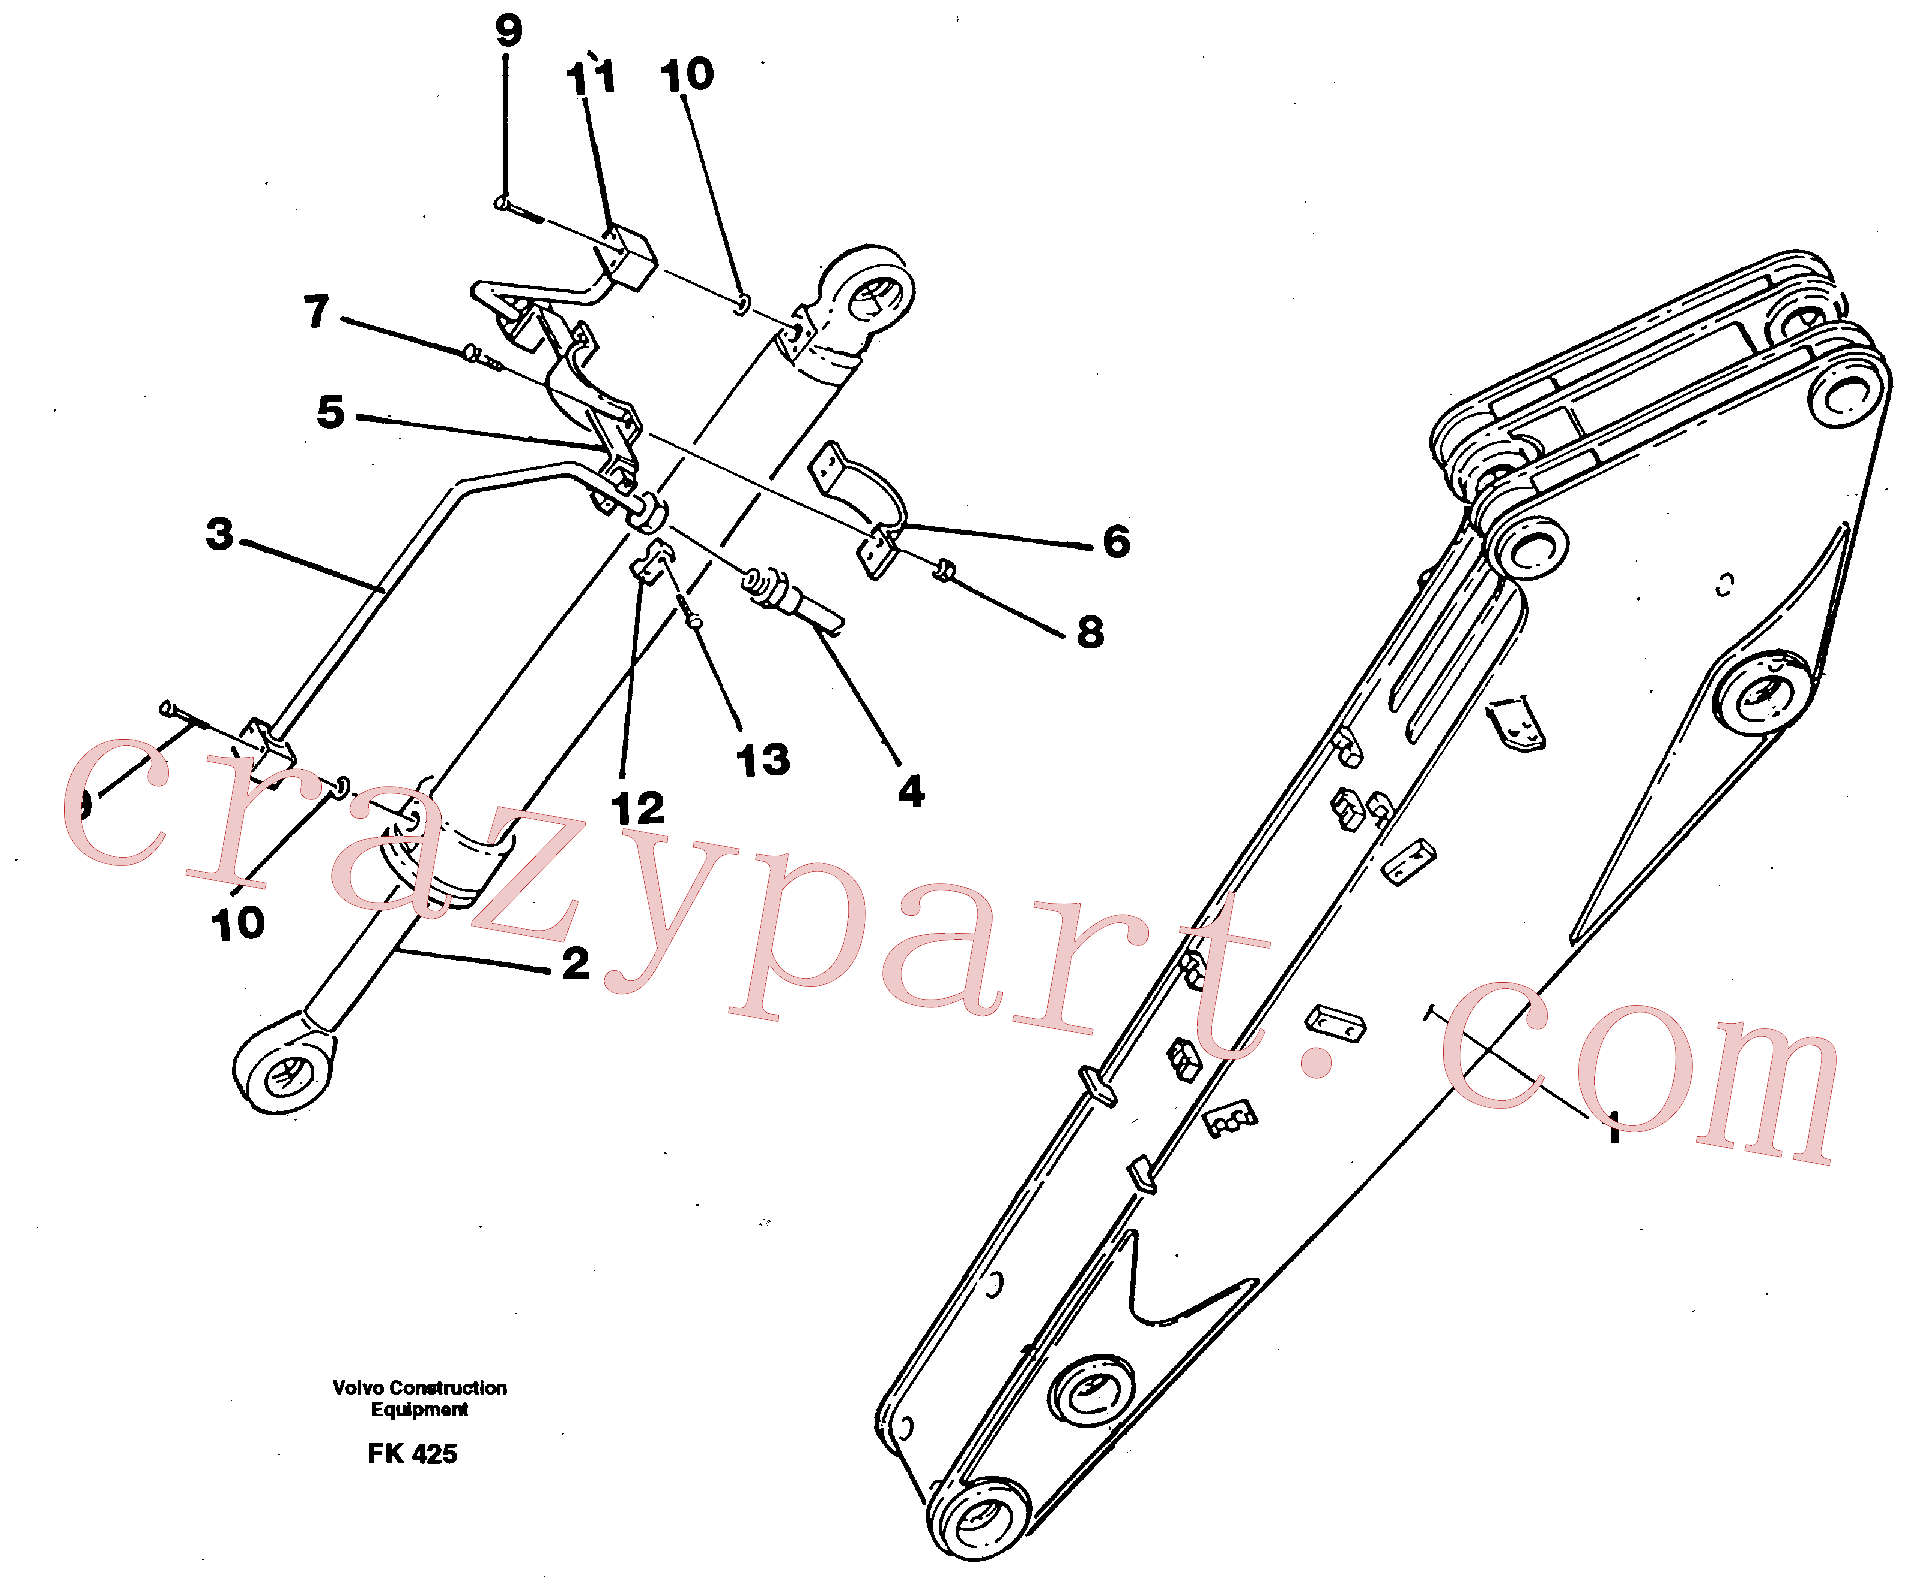 VOE14053582 for Volvo Hydraulic system, dipperarm(FK425 assembly)